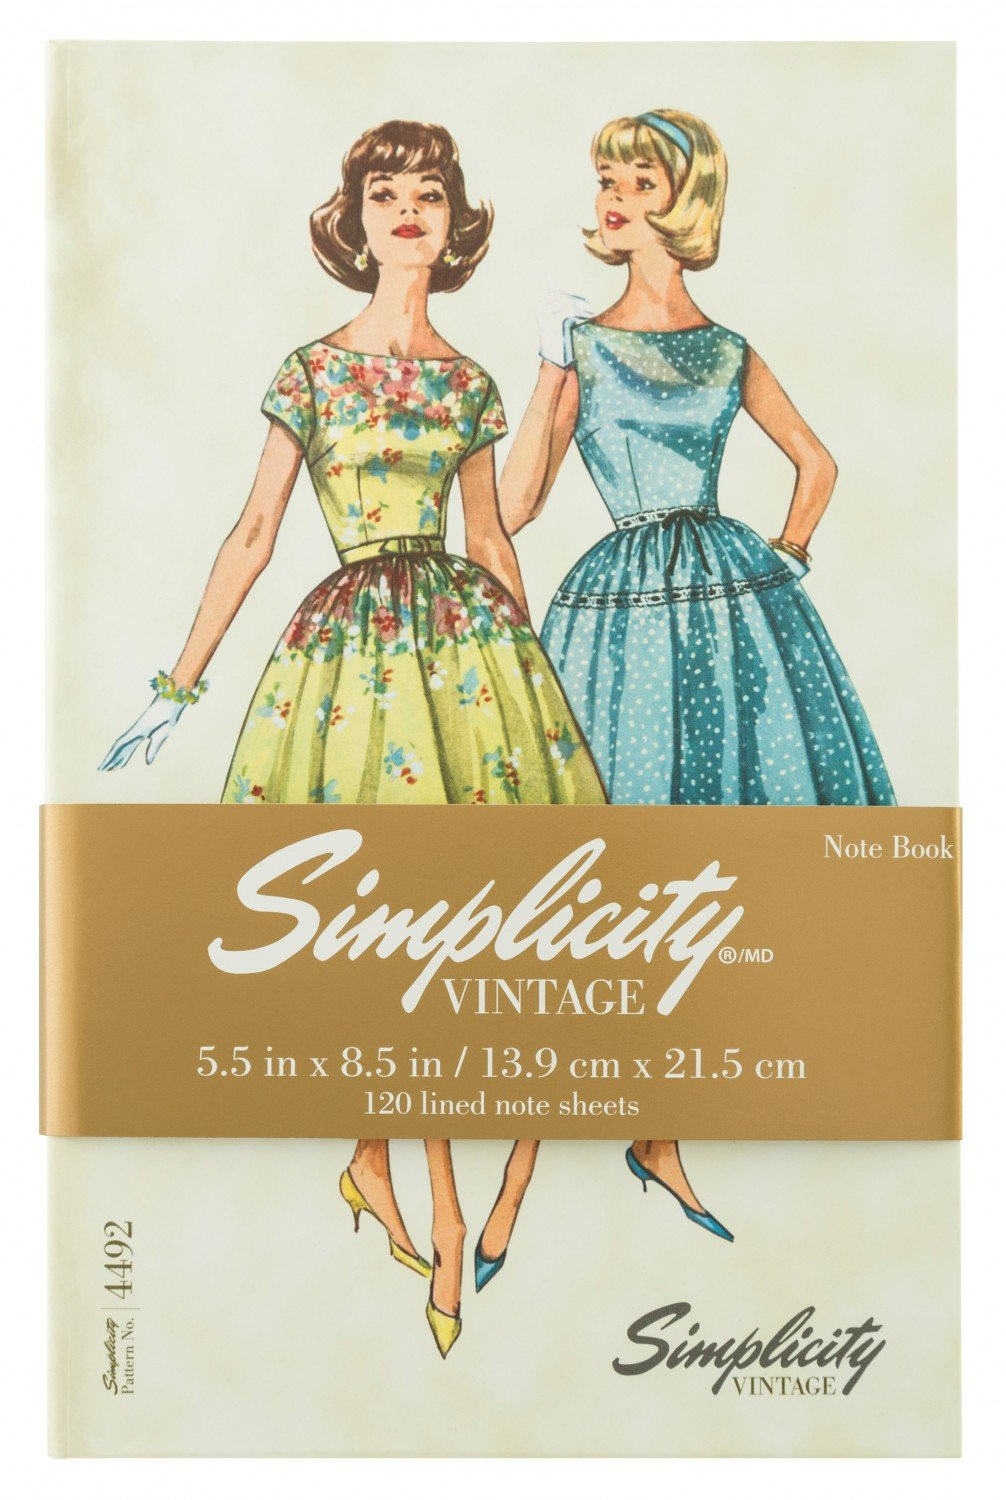 Simplicity Vintage Hardcover Lined Notebook